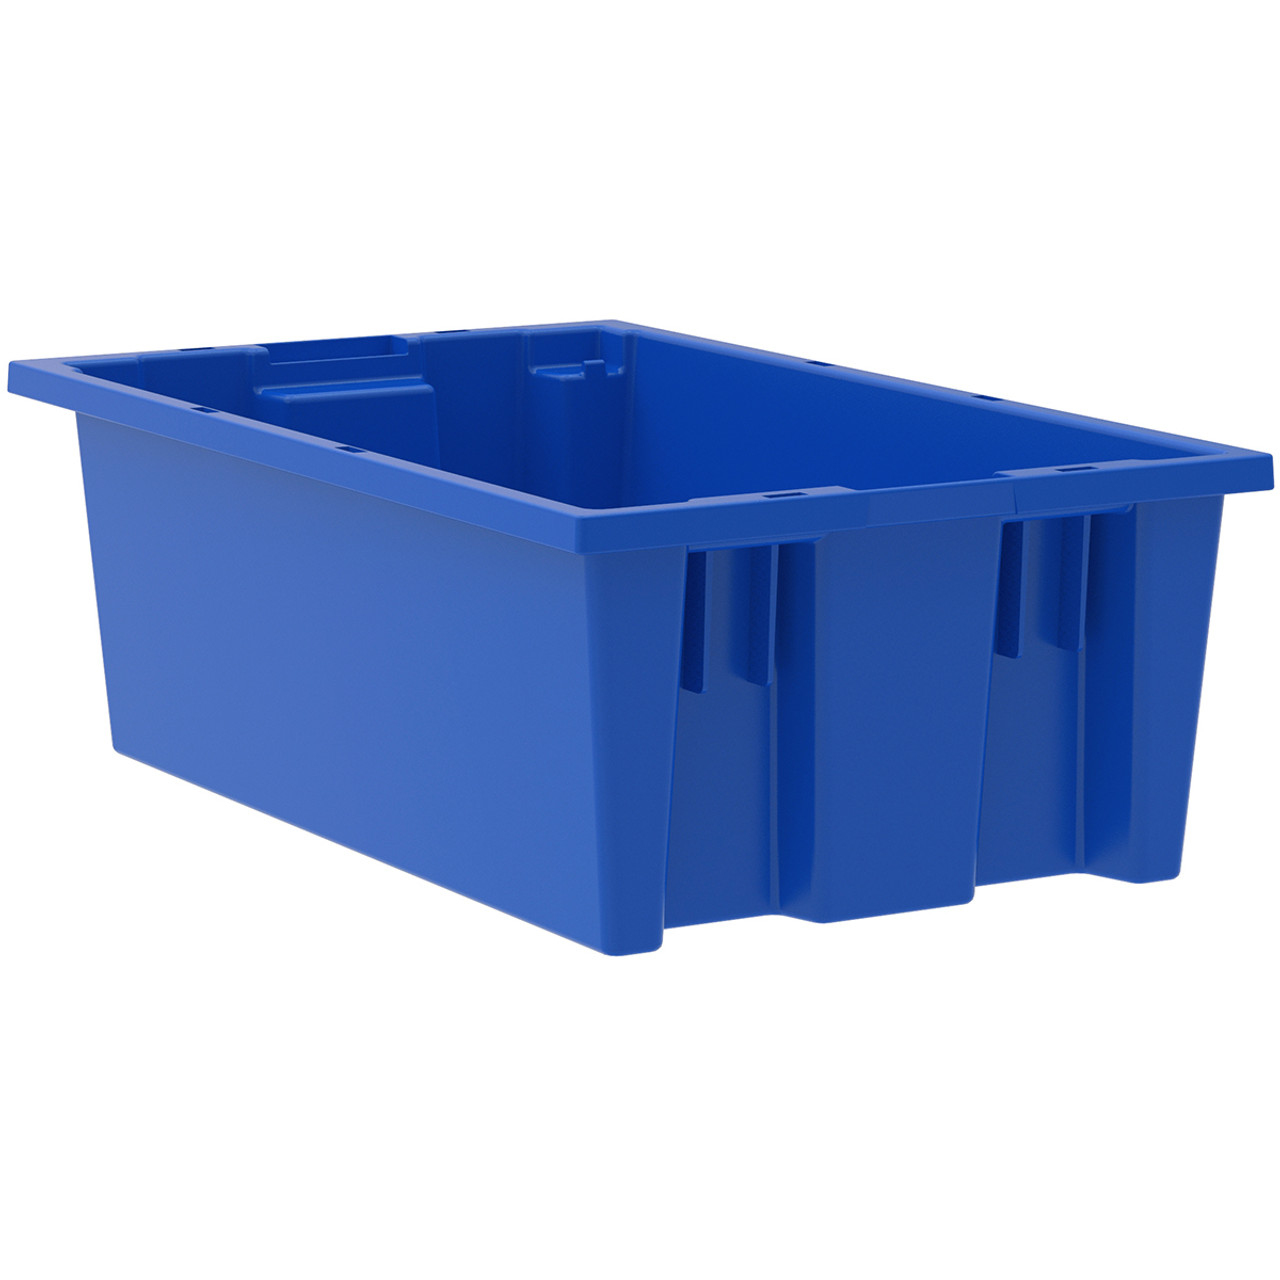 Tote, Nest/Stack,Blue, 18 x  11 x 6 35180BLUE